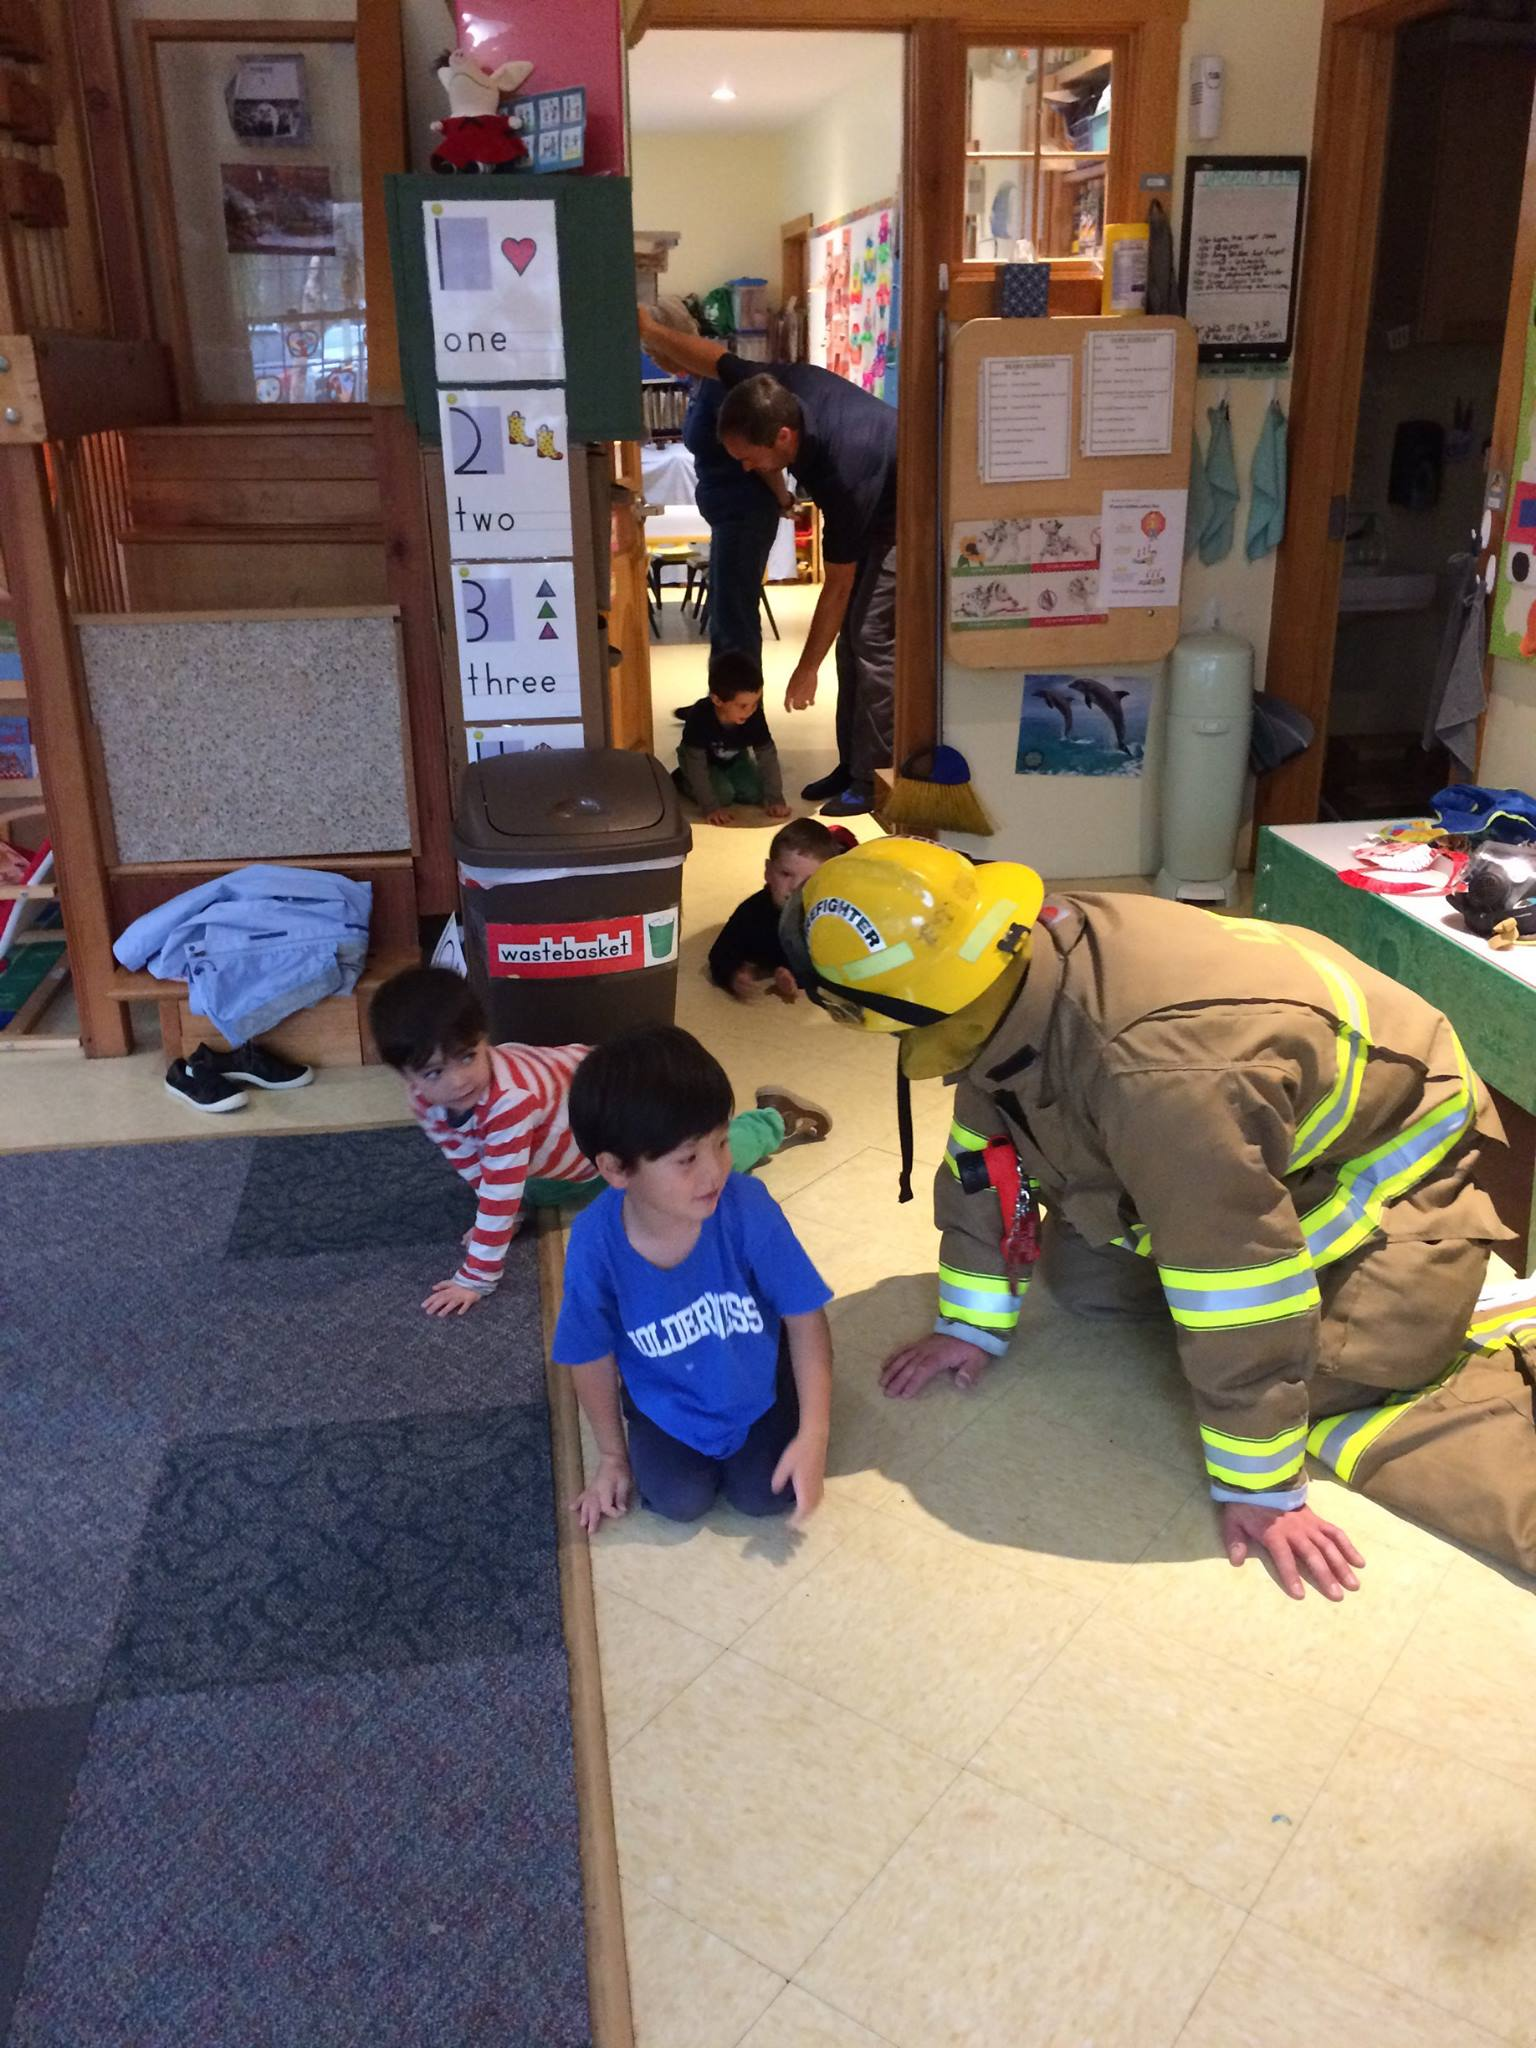 firefighter teaching preschool children while crawling on floor